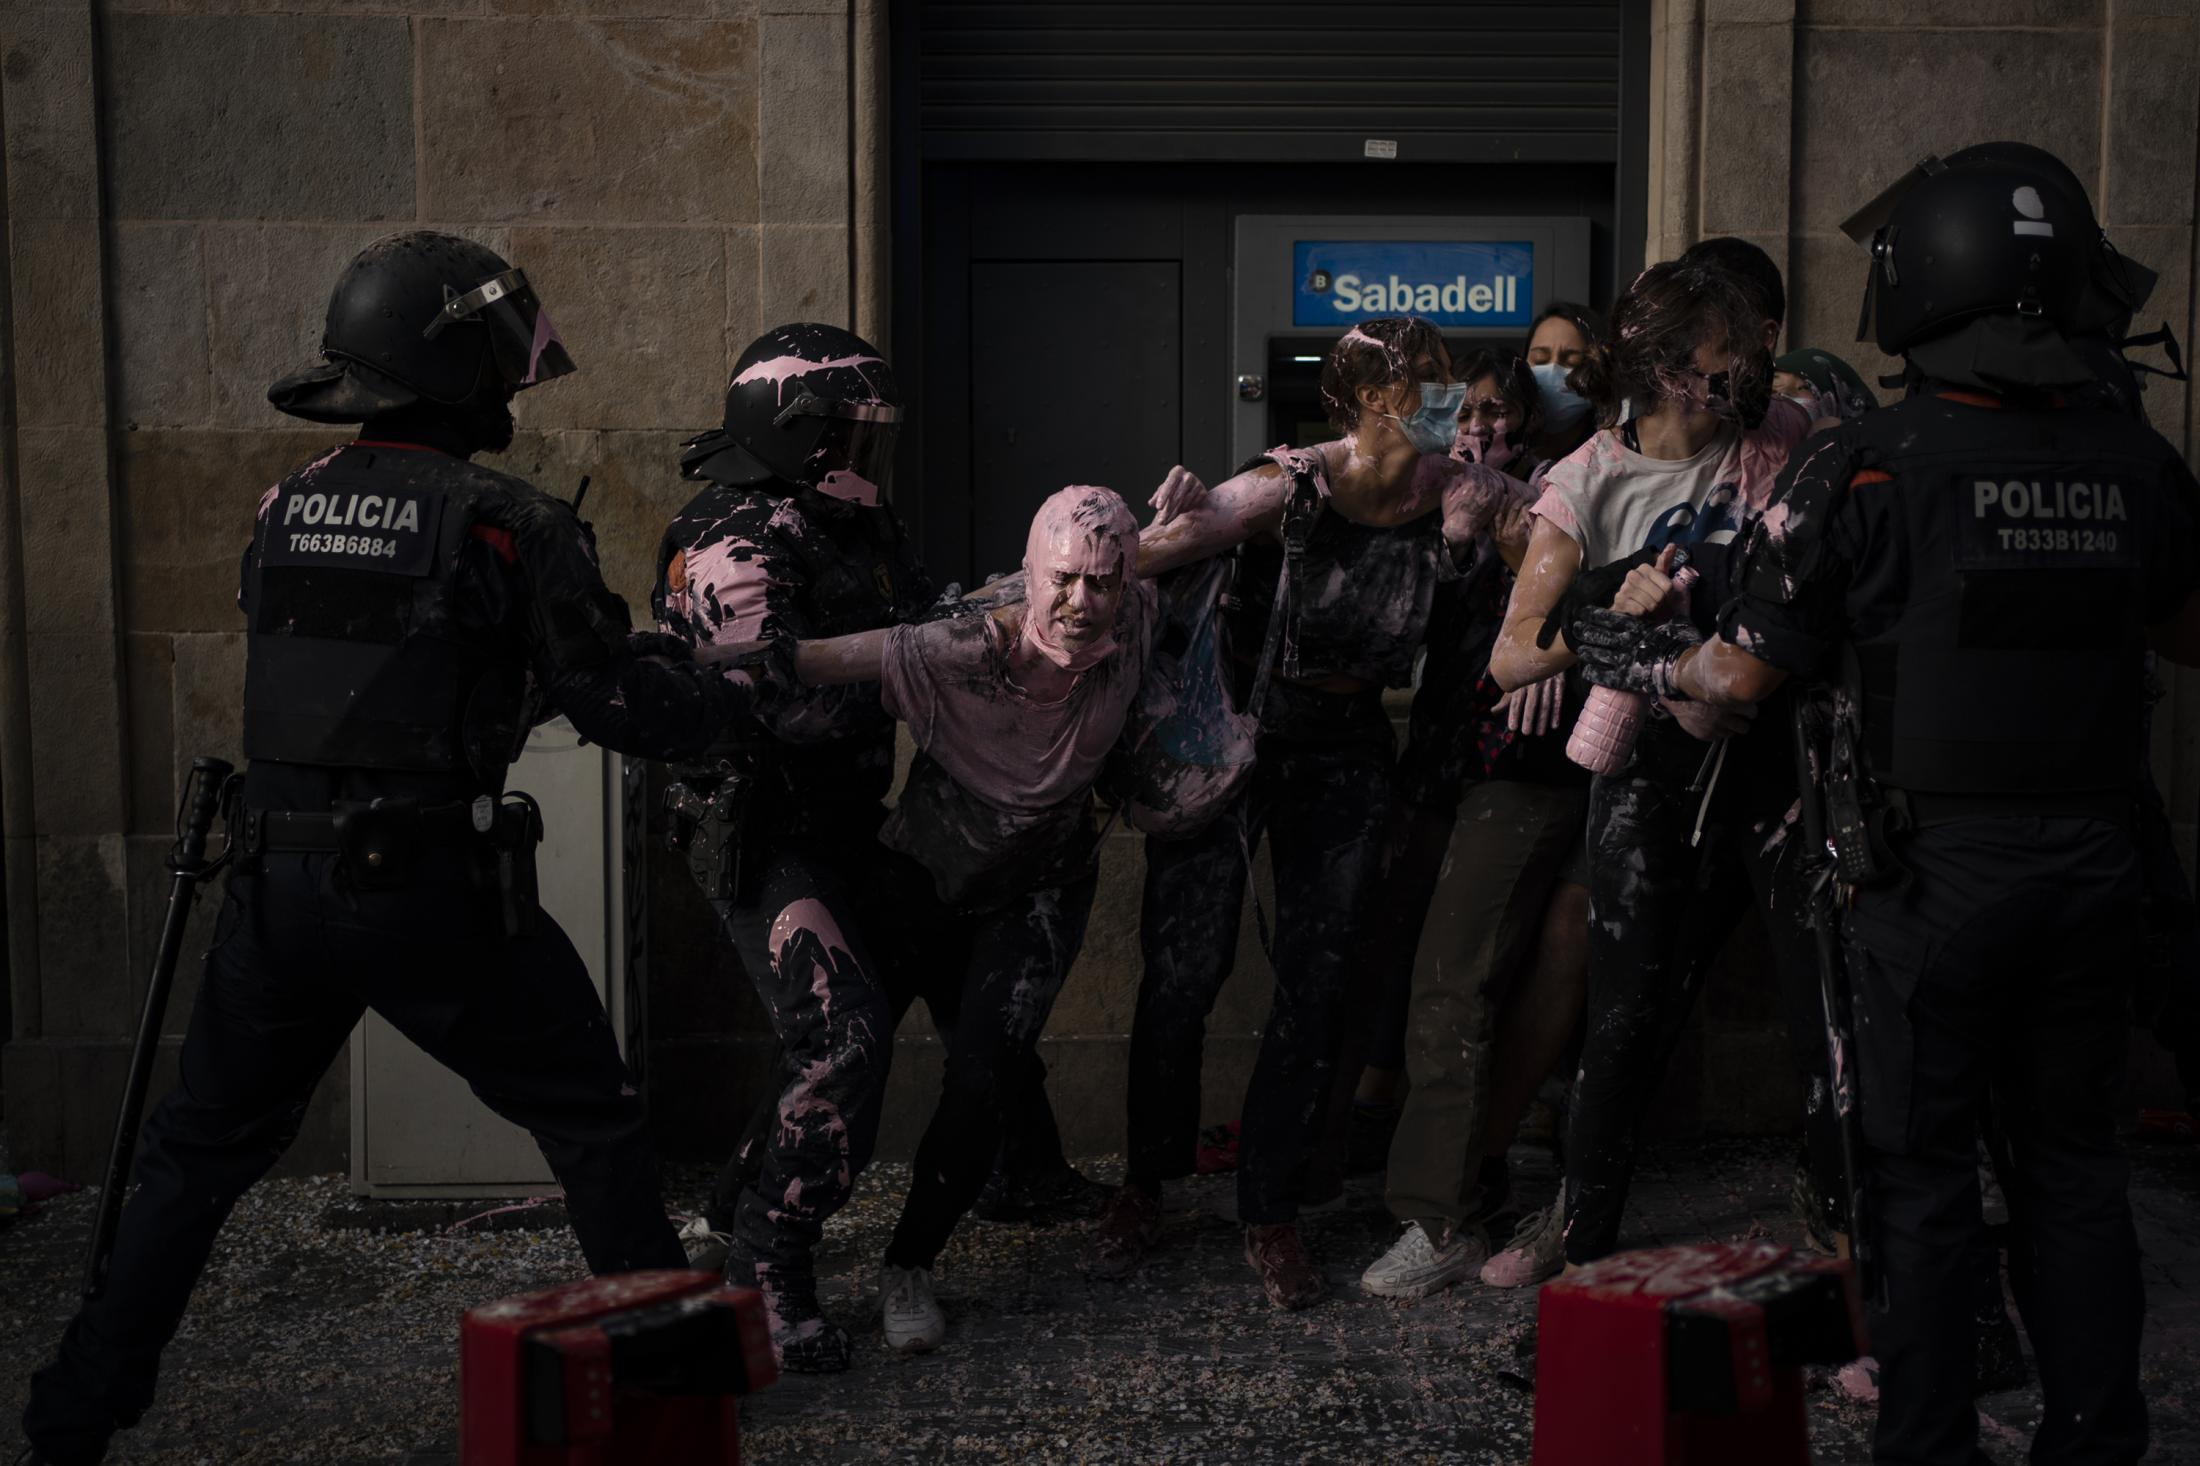 Riot police officers clash with protestors as they try to stop the eviction of Maite Mendibil, 58, from her apartment in Barcelona, Spain. Thursday, Oct. 1, 2020. Maite, has being accused of non-payment of a month's rent in 2015. The eviction was postponed with a help of anti-eviction activists that gathered outside the apartment block surrounded by riot police. (AP Photo/Joan Mateu)